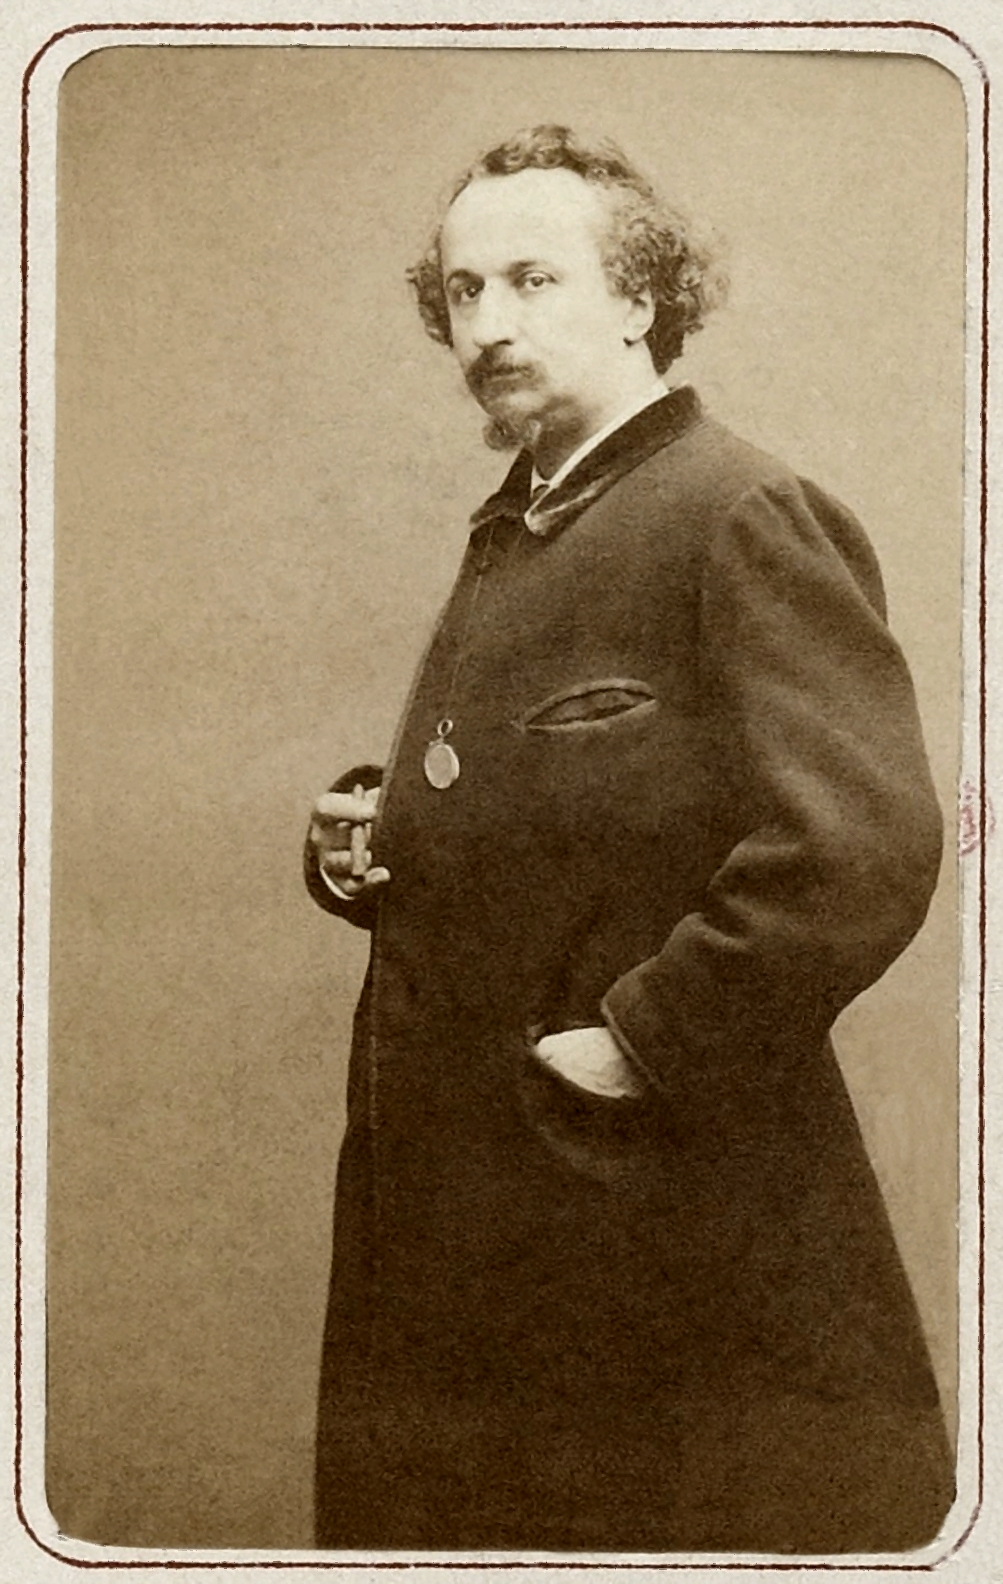 Image of Étienne Carjat from Wikidata